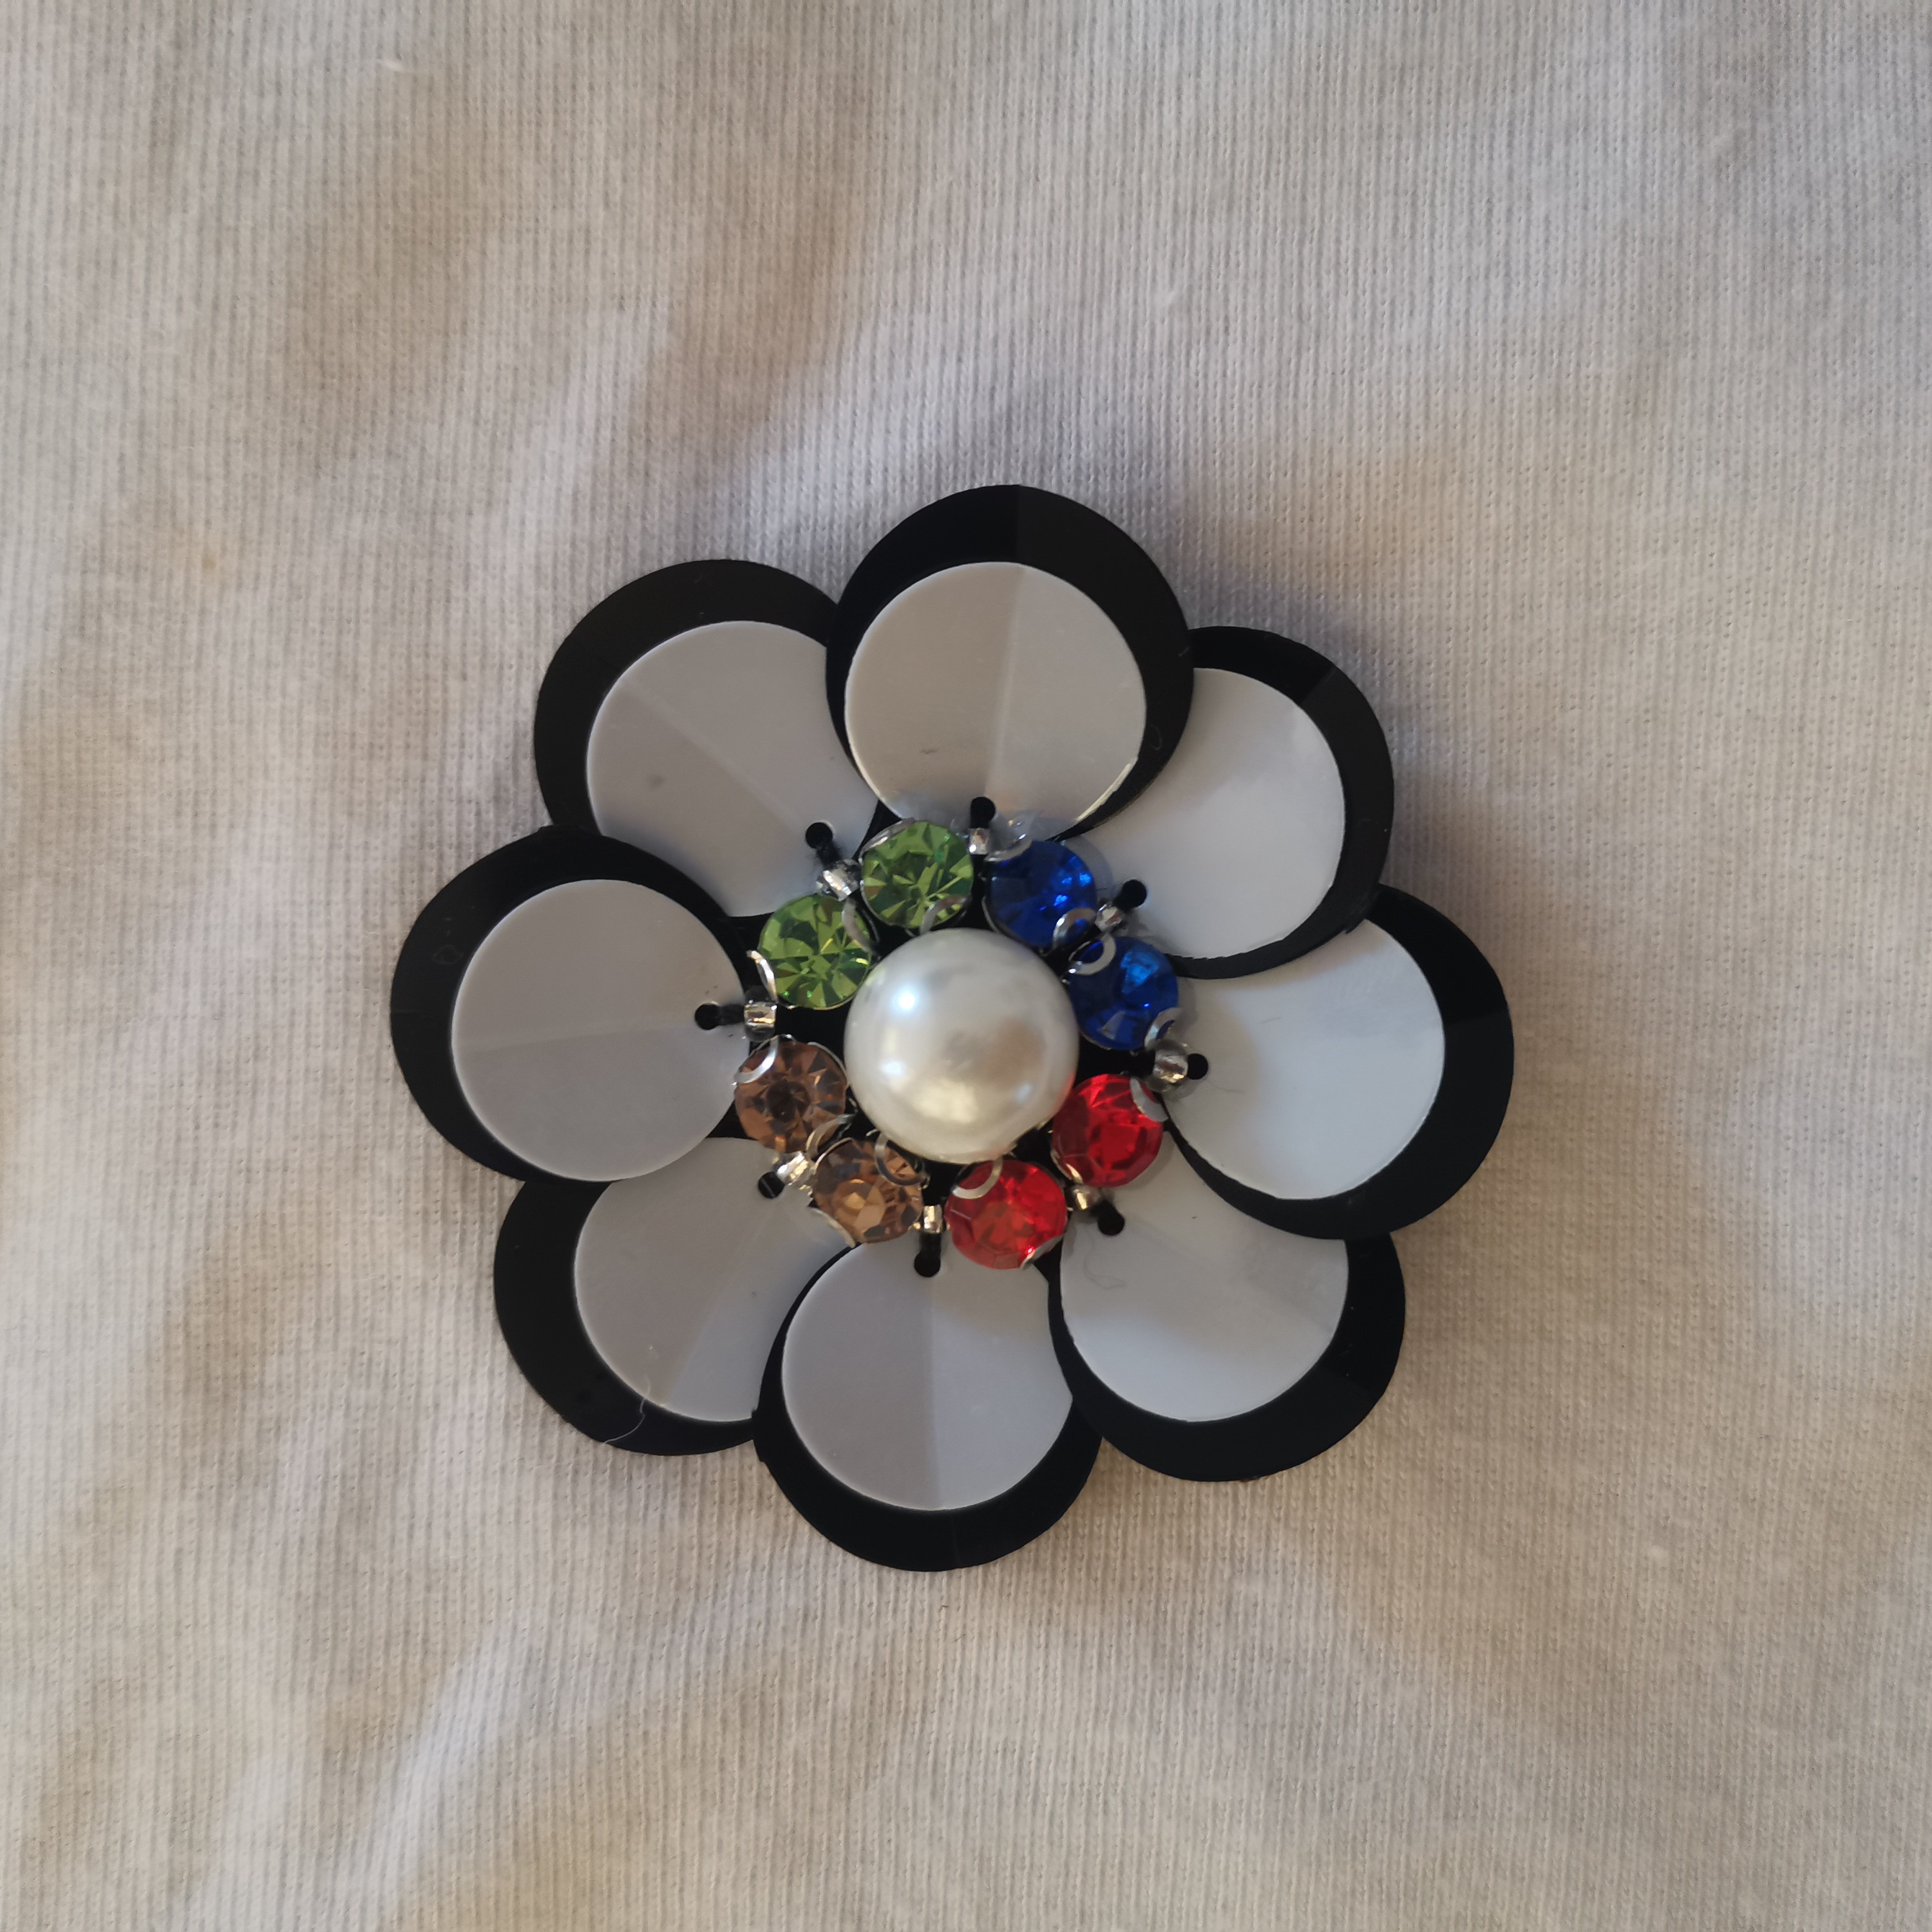 Diy Diamond and pearl sequins Handmade Flowers Suitable for personality brooch, bag, headwear